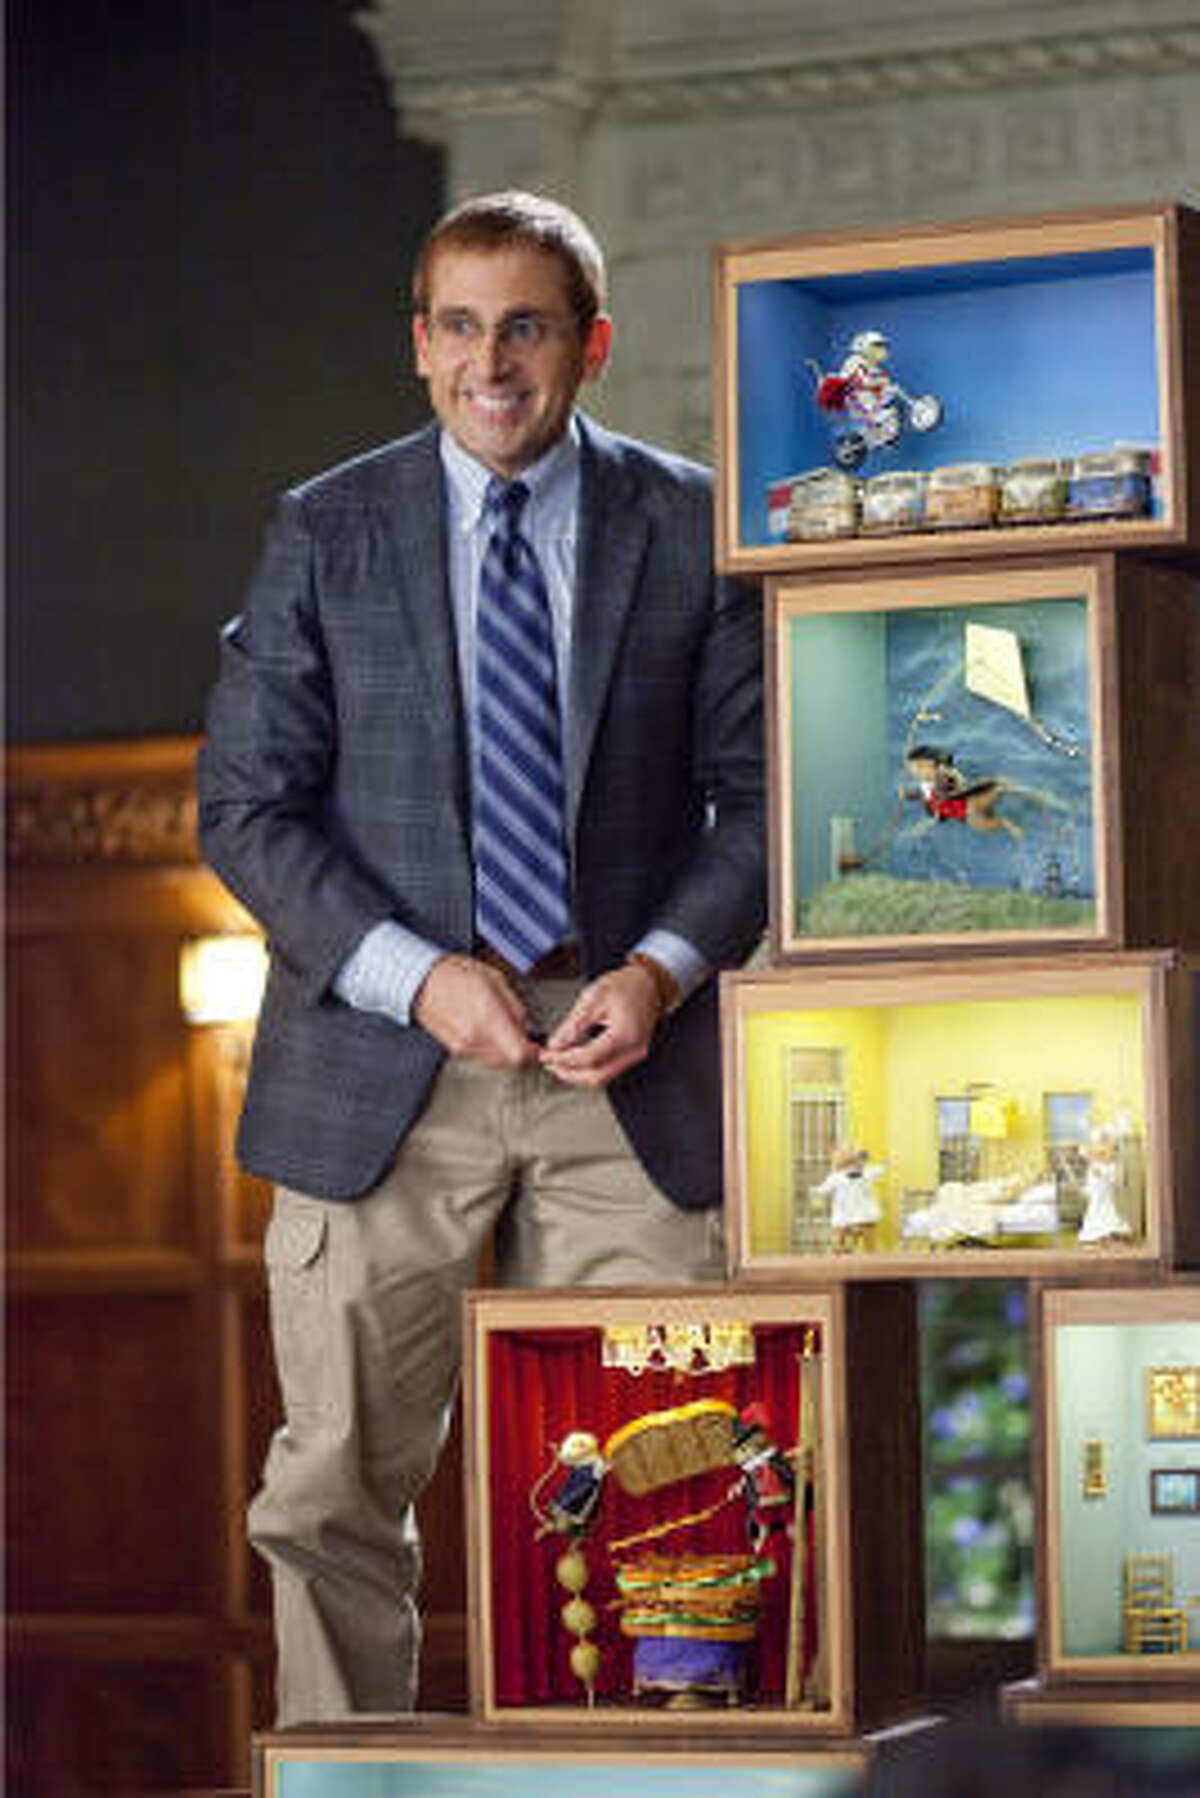 In Dinner for Schmucks, Steve Carell plays Barry, a socially awkward IRS employee who makes dioramas using dead rodents.